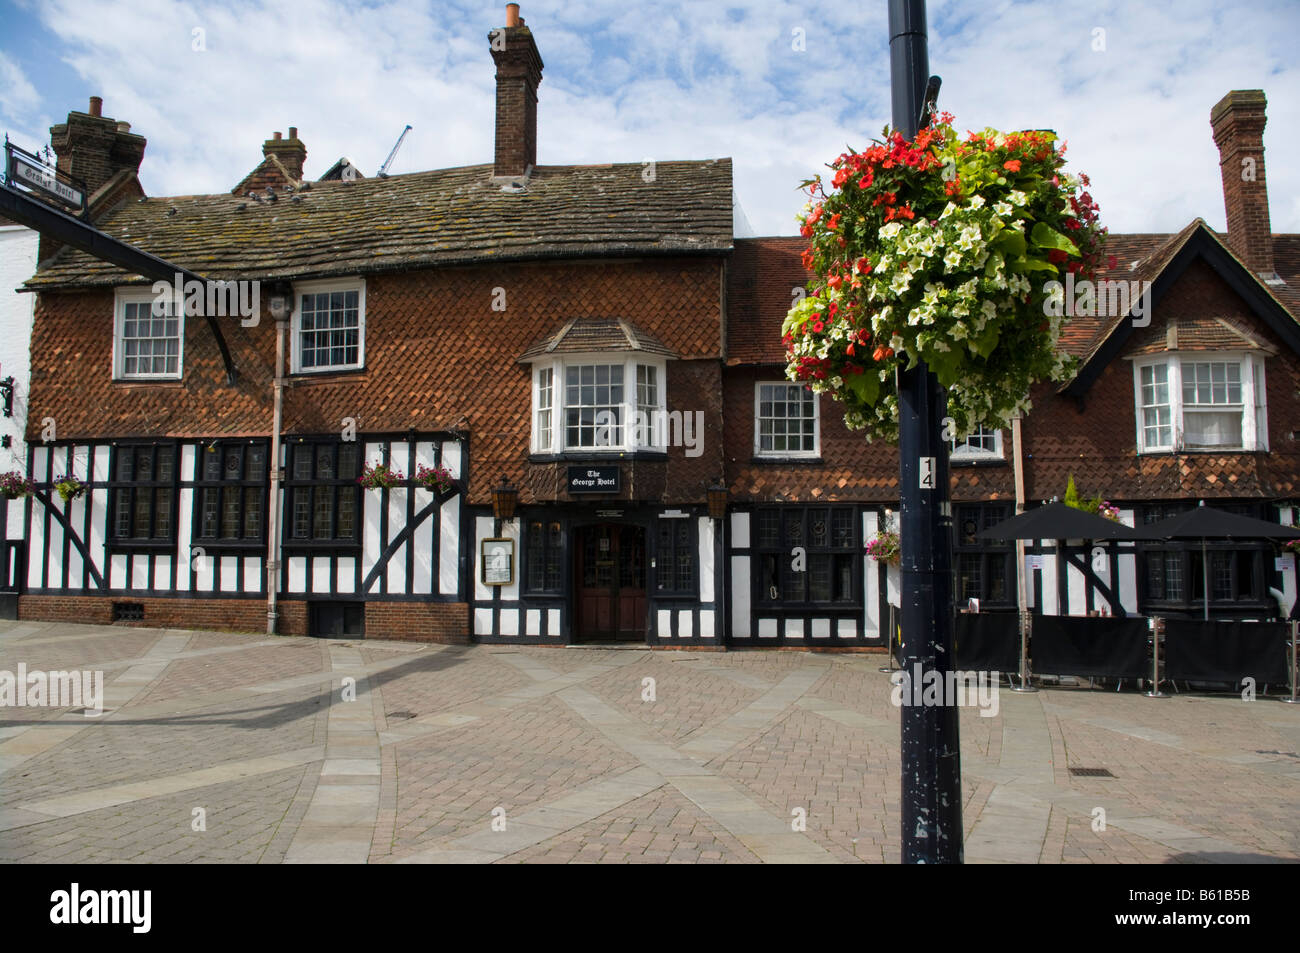 The George Hotel High Street Crawley West Sussex UK - Stock Image